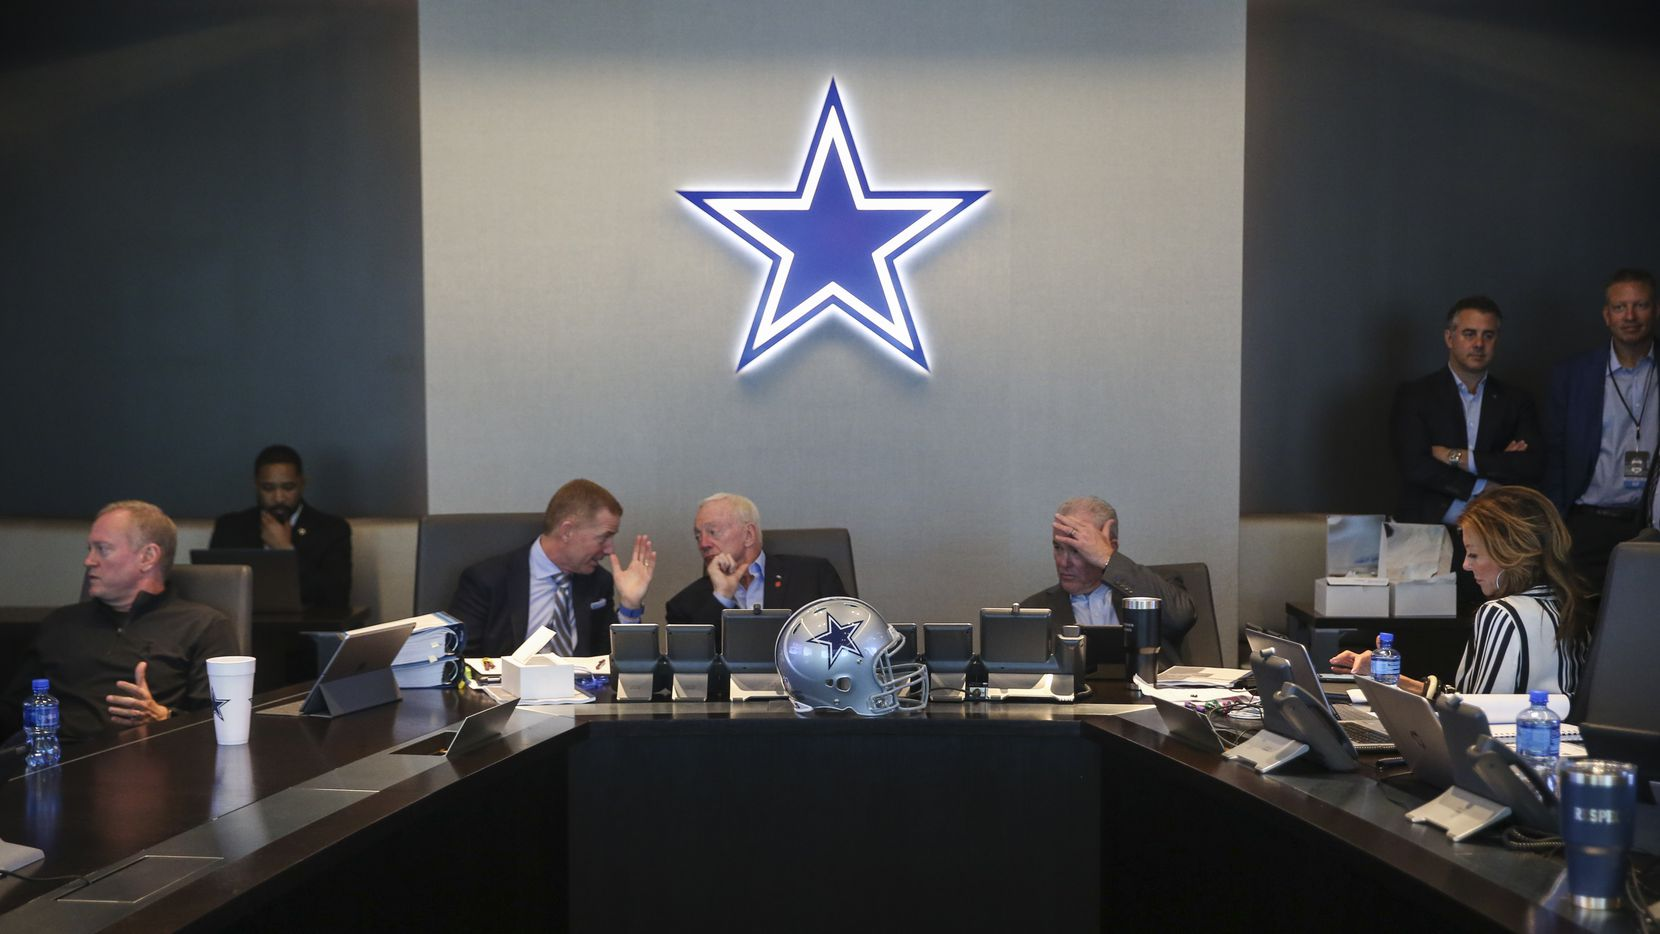 Dallas Cowboys Head Coach Jason Garrett, left, Owner Jerry Jones, and Chief Operating Officer Stephen Jones head the table in The War Room during the first round of the NFL Draft on Thursday, April 25, 2019 at The Star in Frisco, Texas.